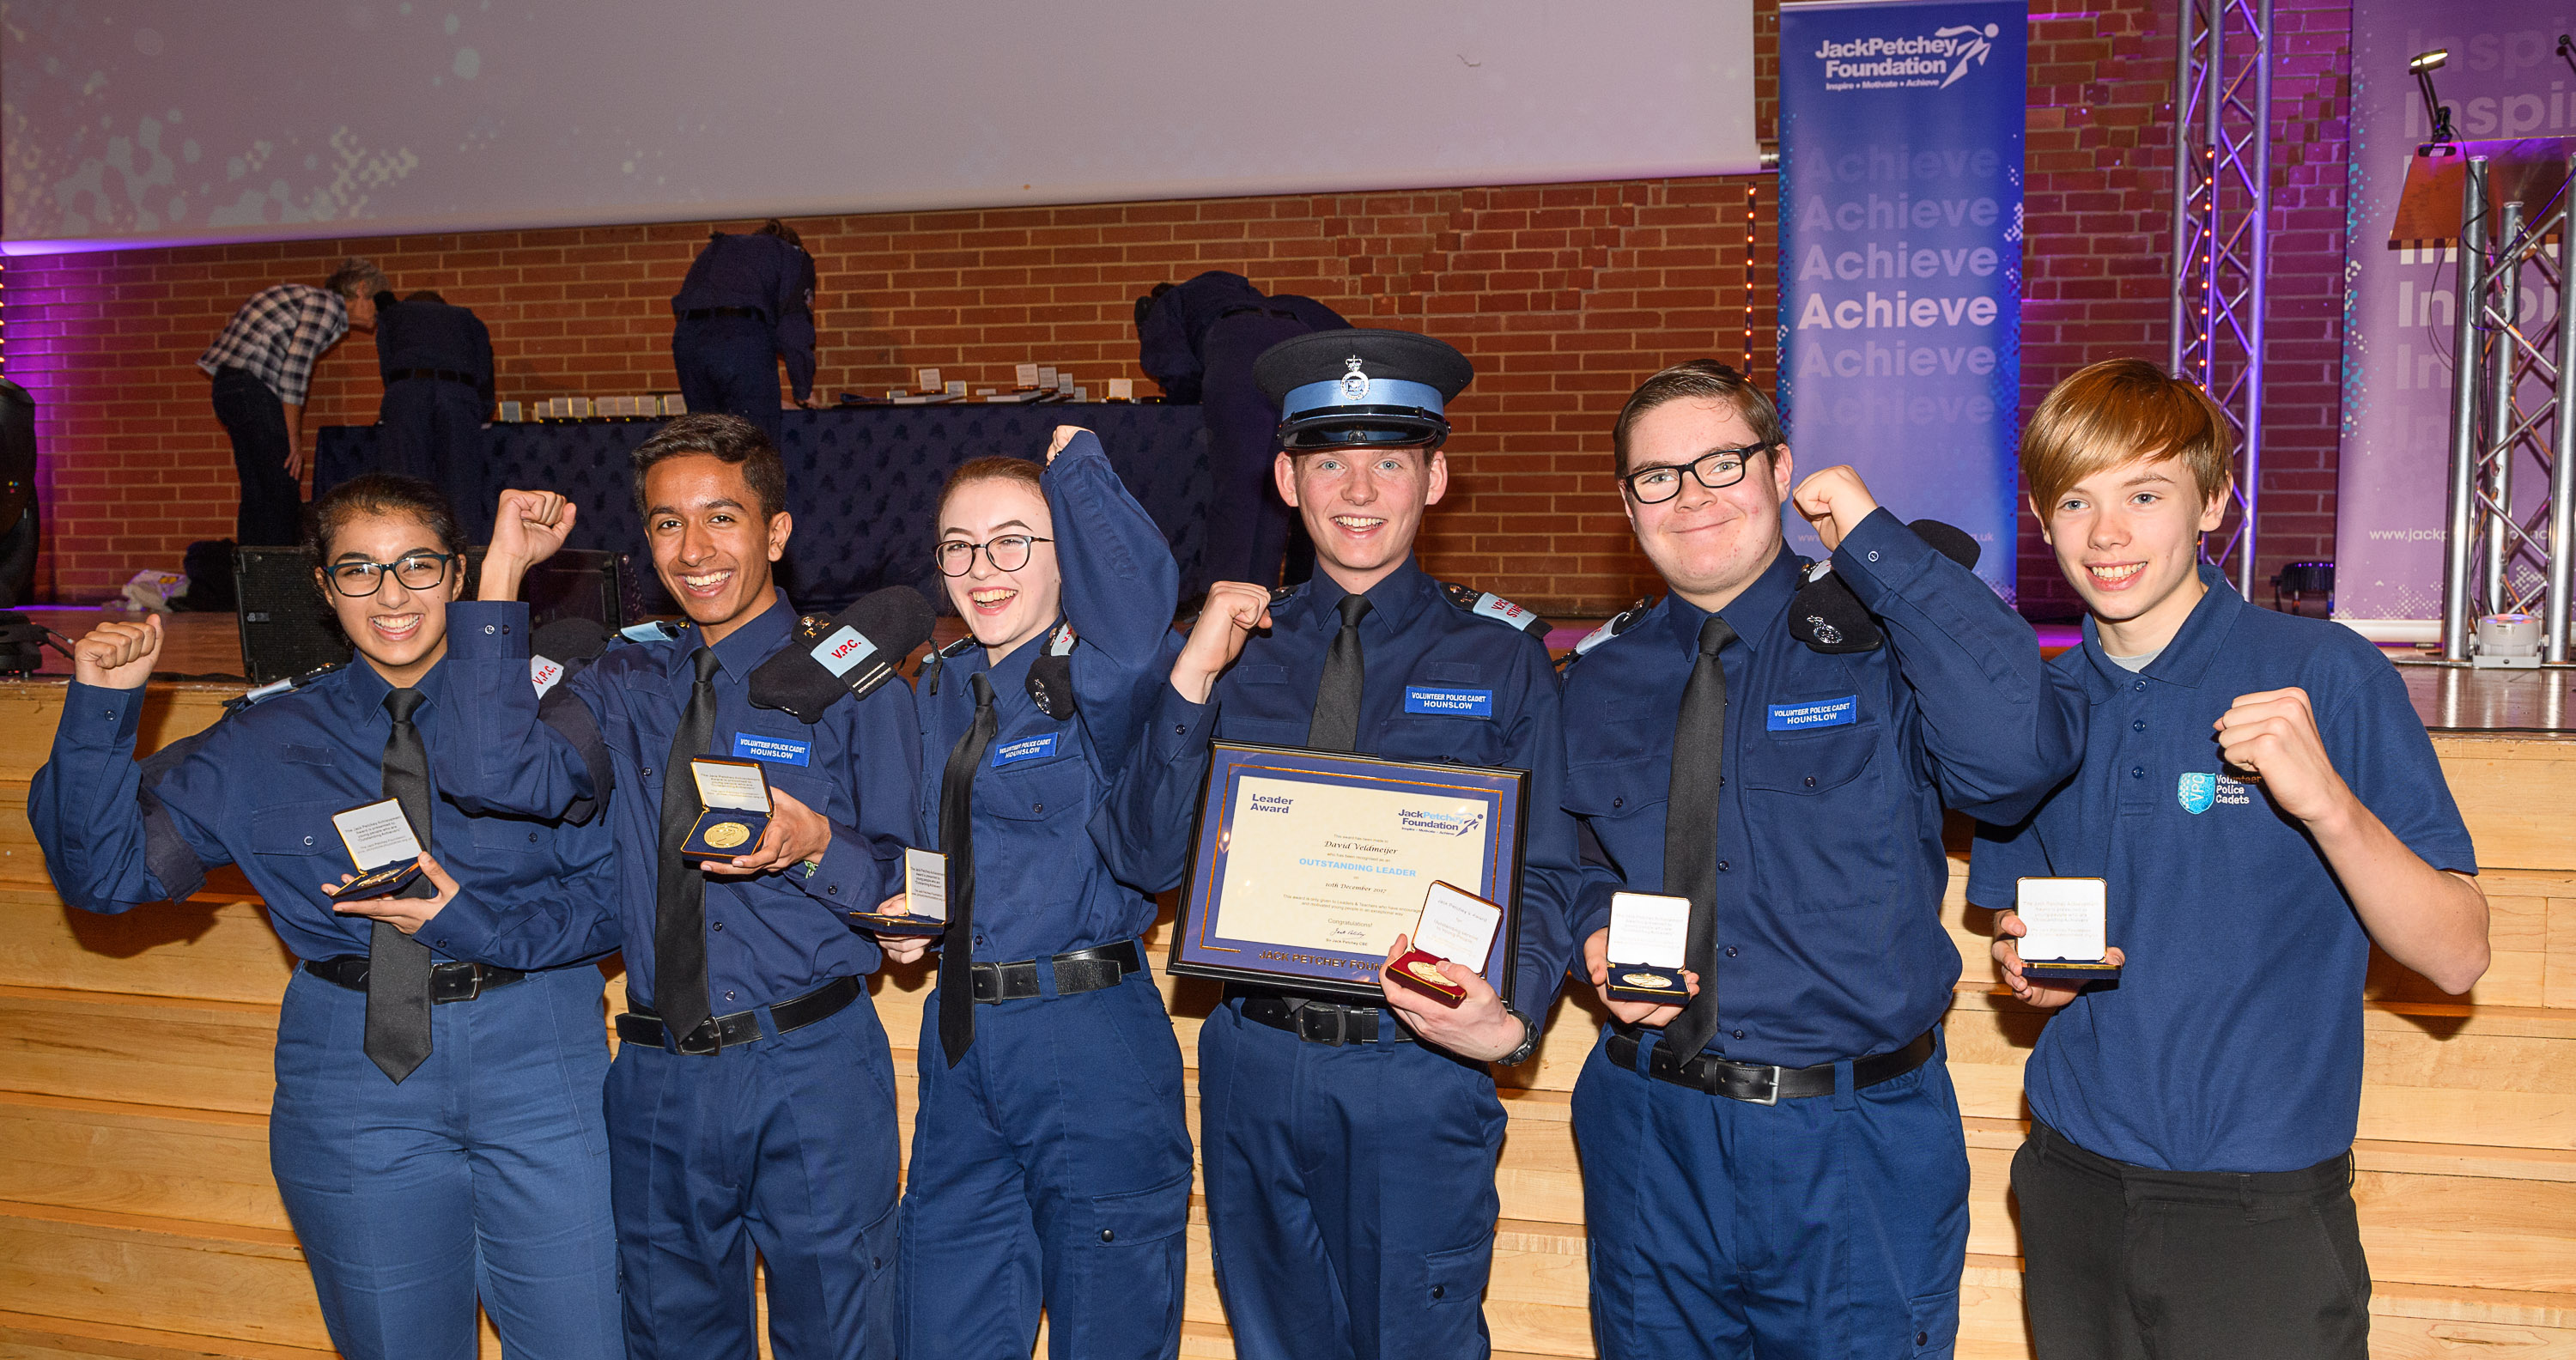 Jack Petchey Foundation recognises Volunteer Police Cadets of North West London for amazing achieve